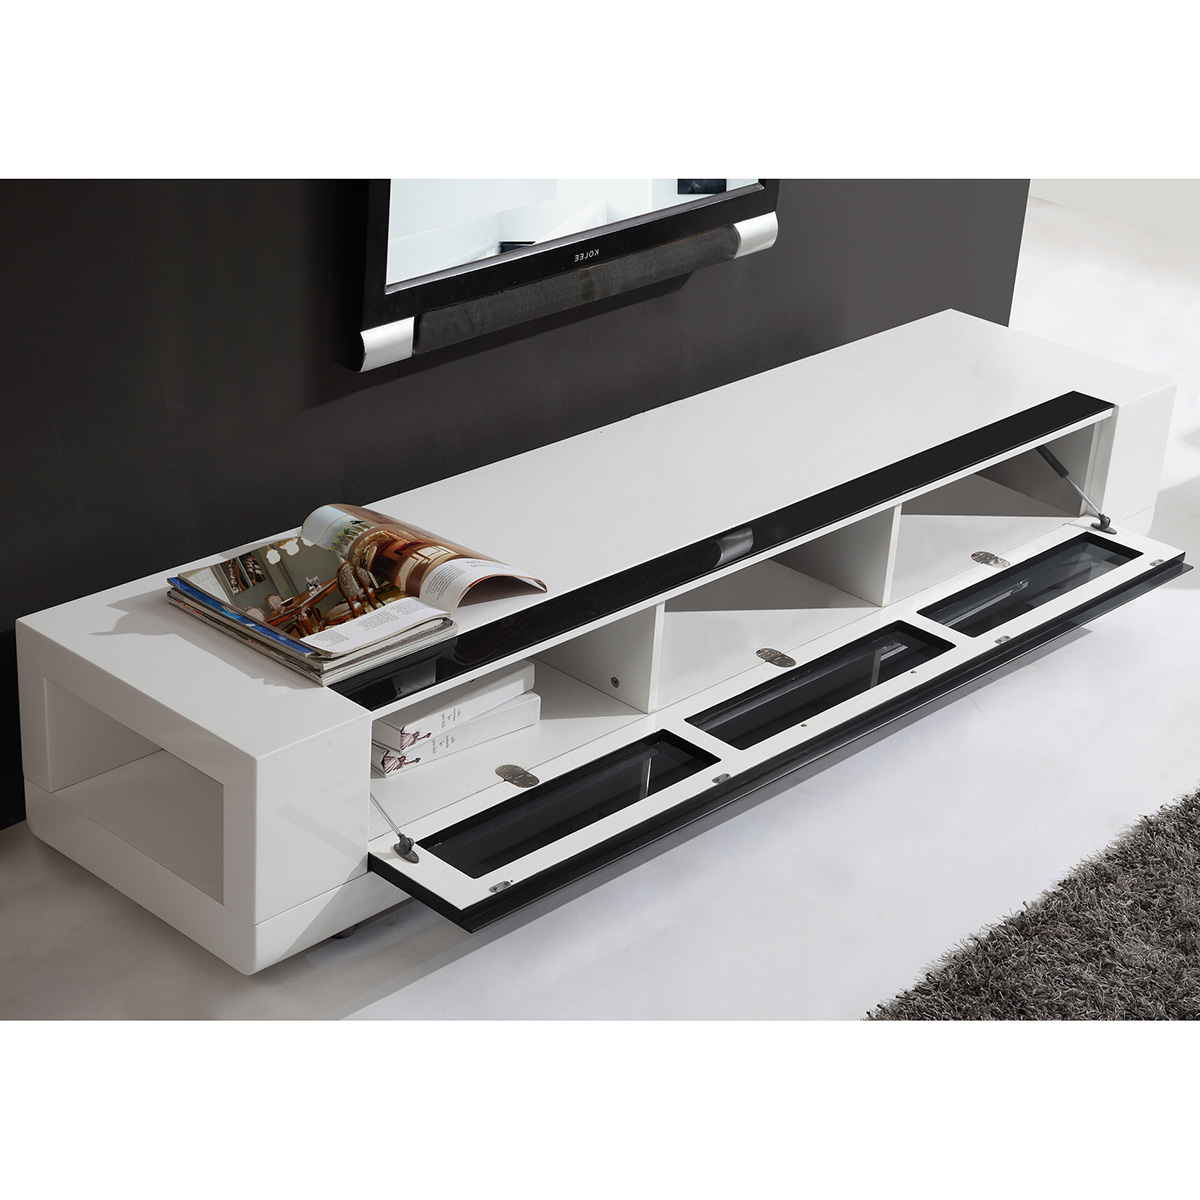 "Popular High Gloss Tv Benches Intended For B Modern Bm 632 Wht Editor Remix 79"" Contemporary Tv Stand In High (Gallery 15 of 20)"